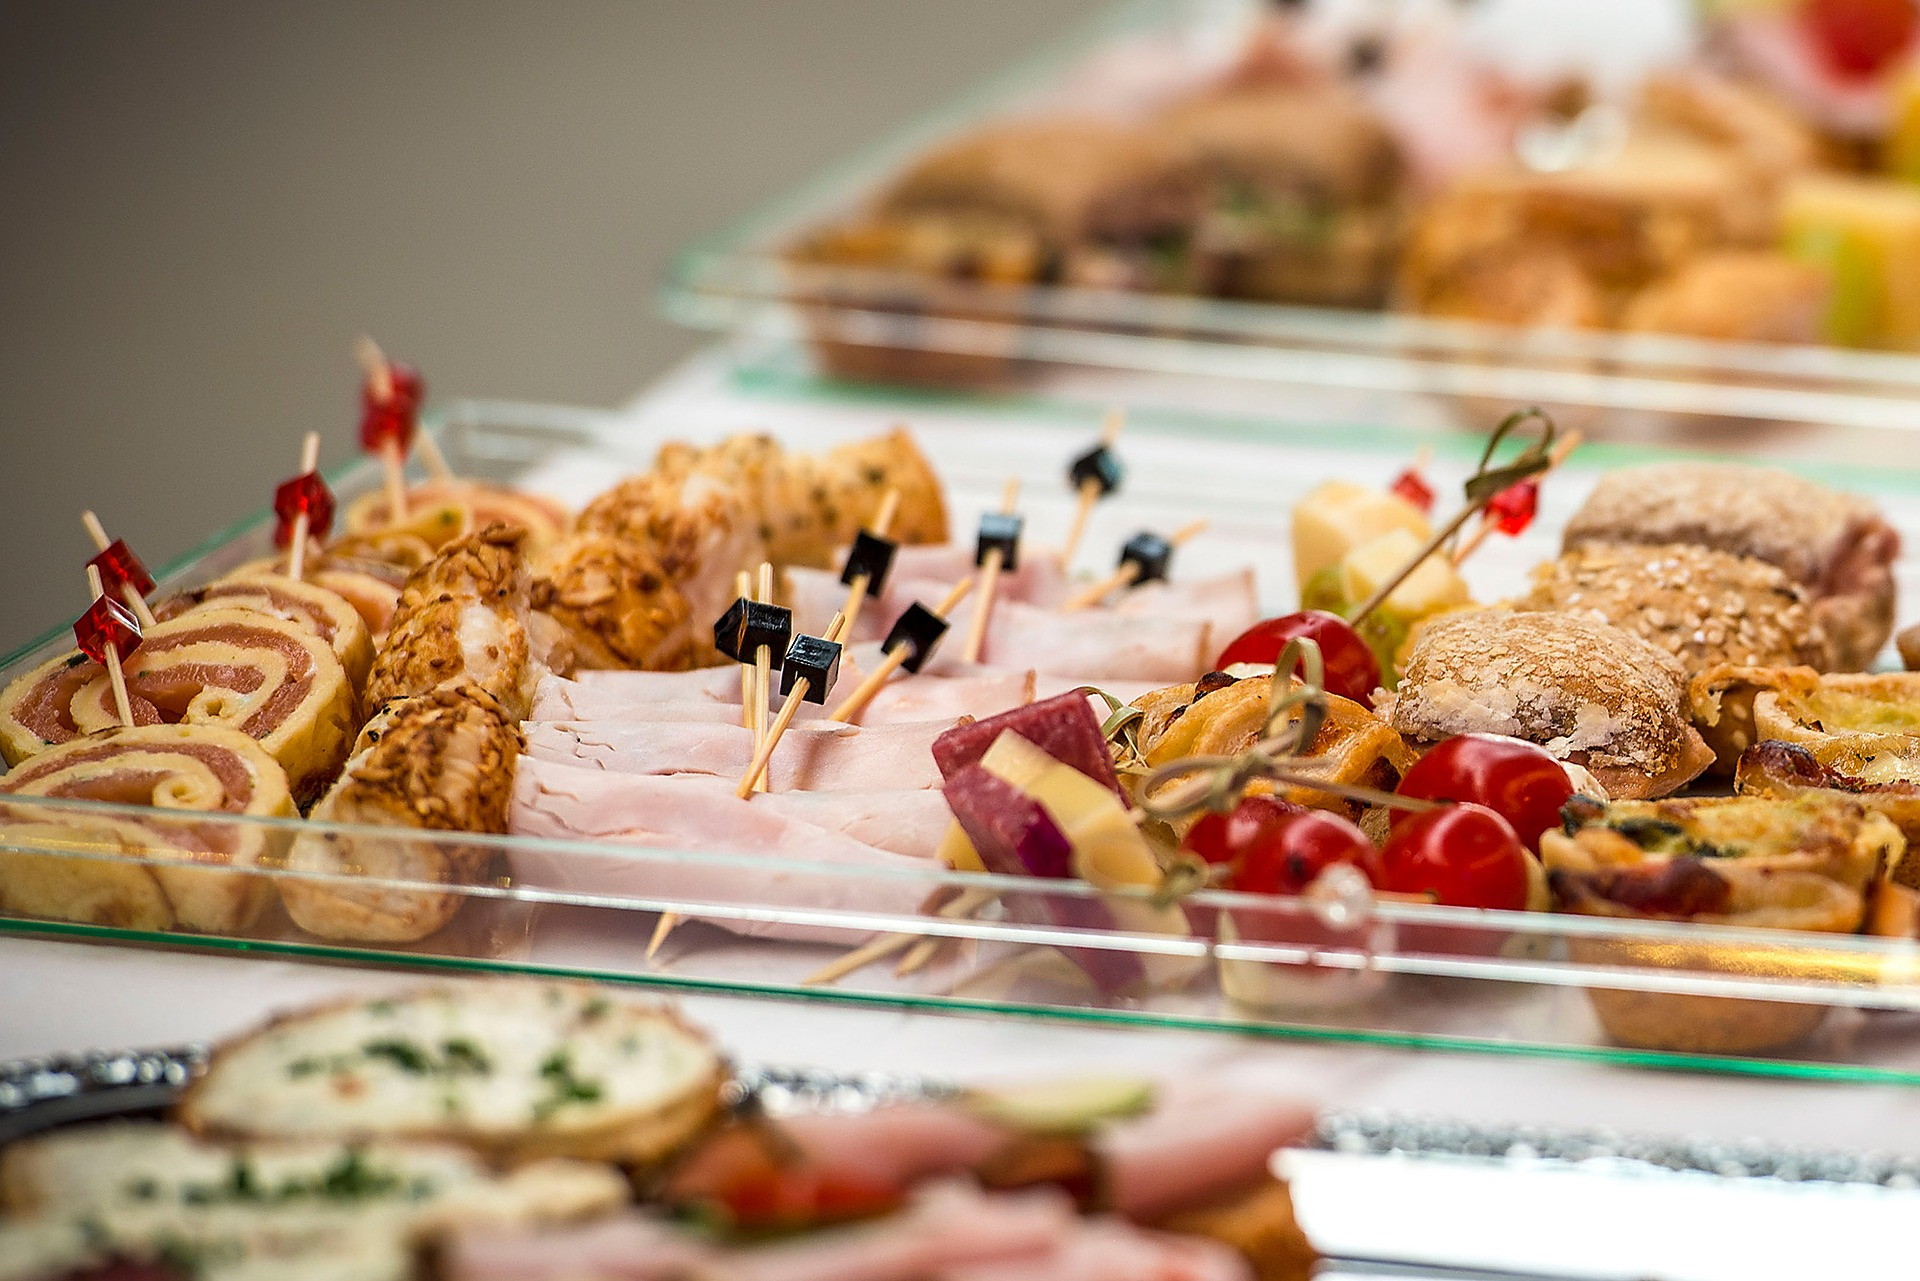 Follow Your Catering Dreams with FoodAffair